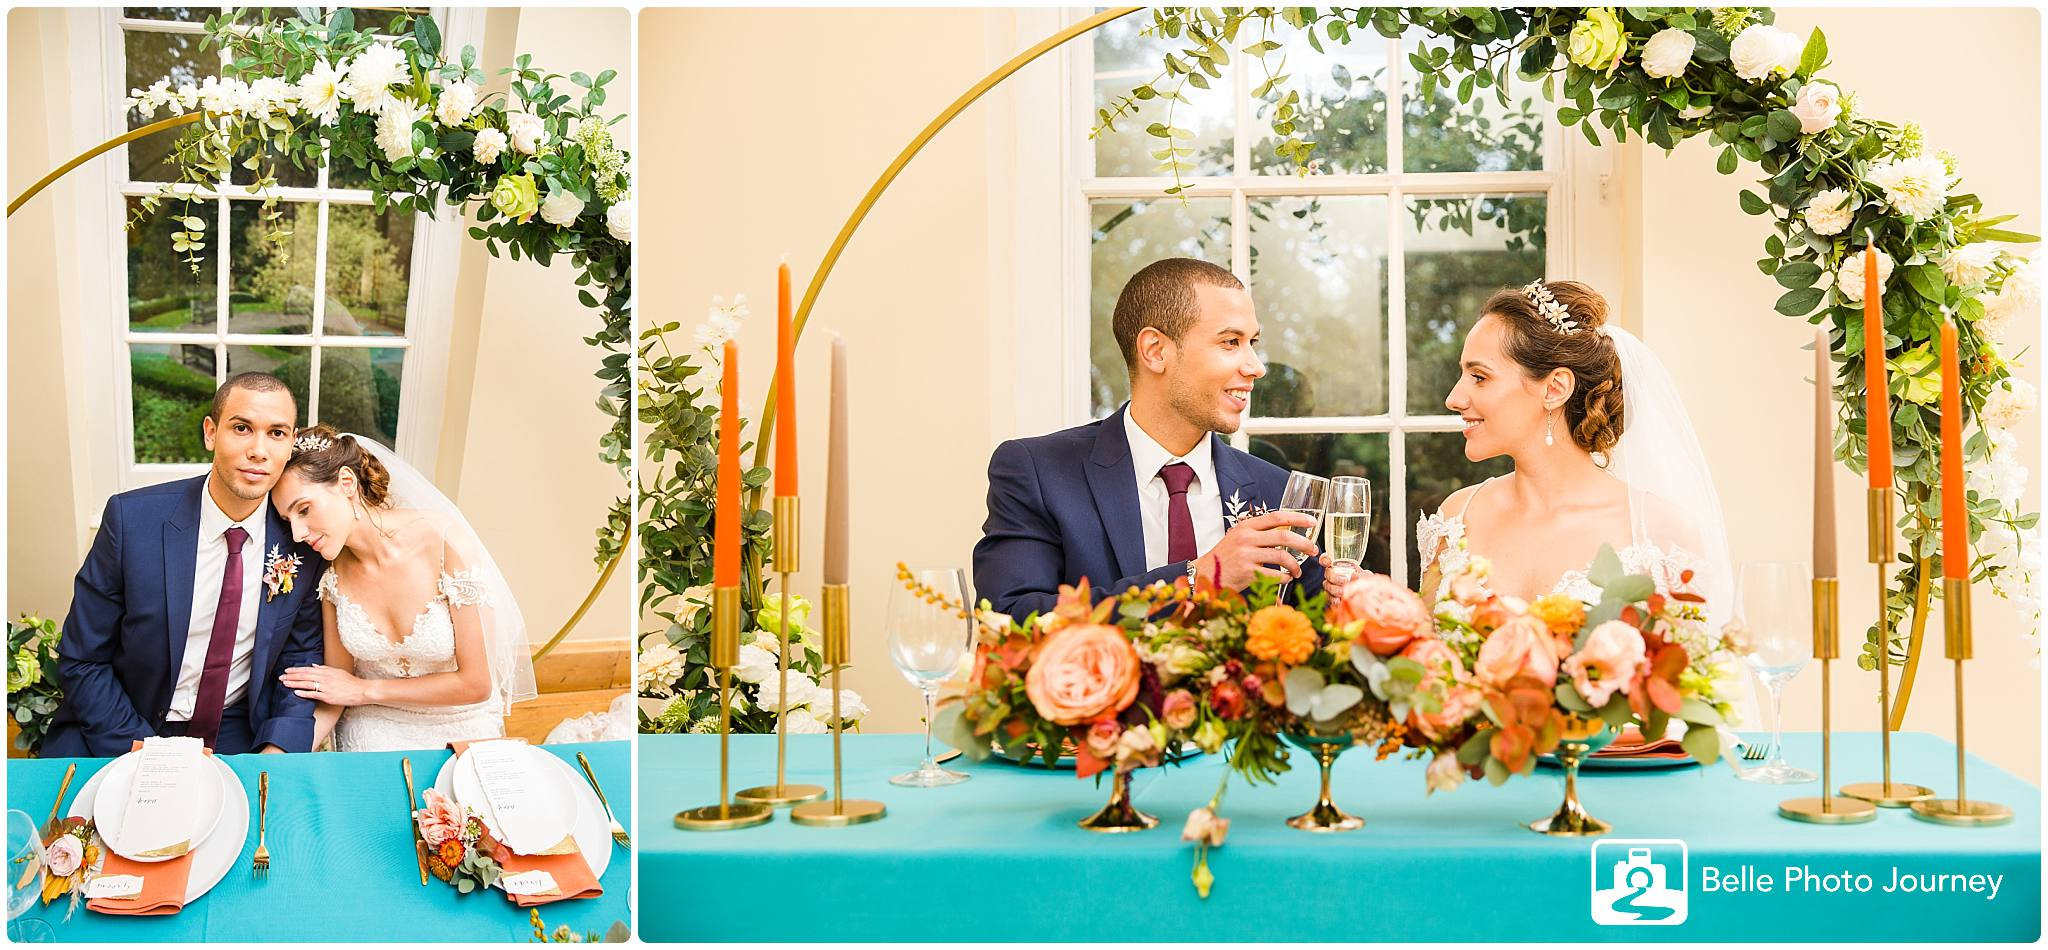 Wedding breakfast couples looking lovingly into each other flower arc bright table cloth